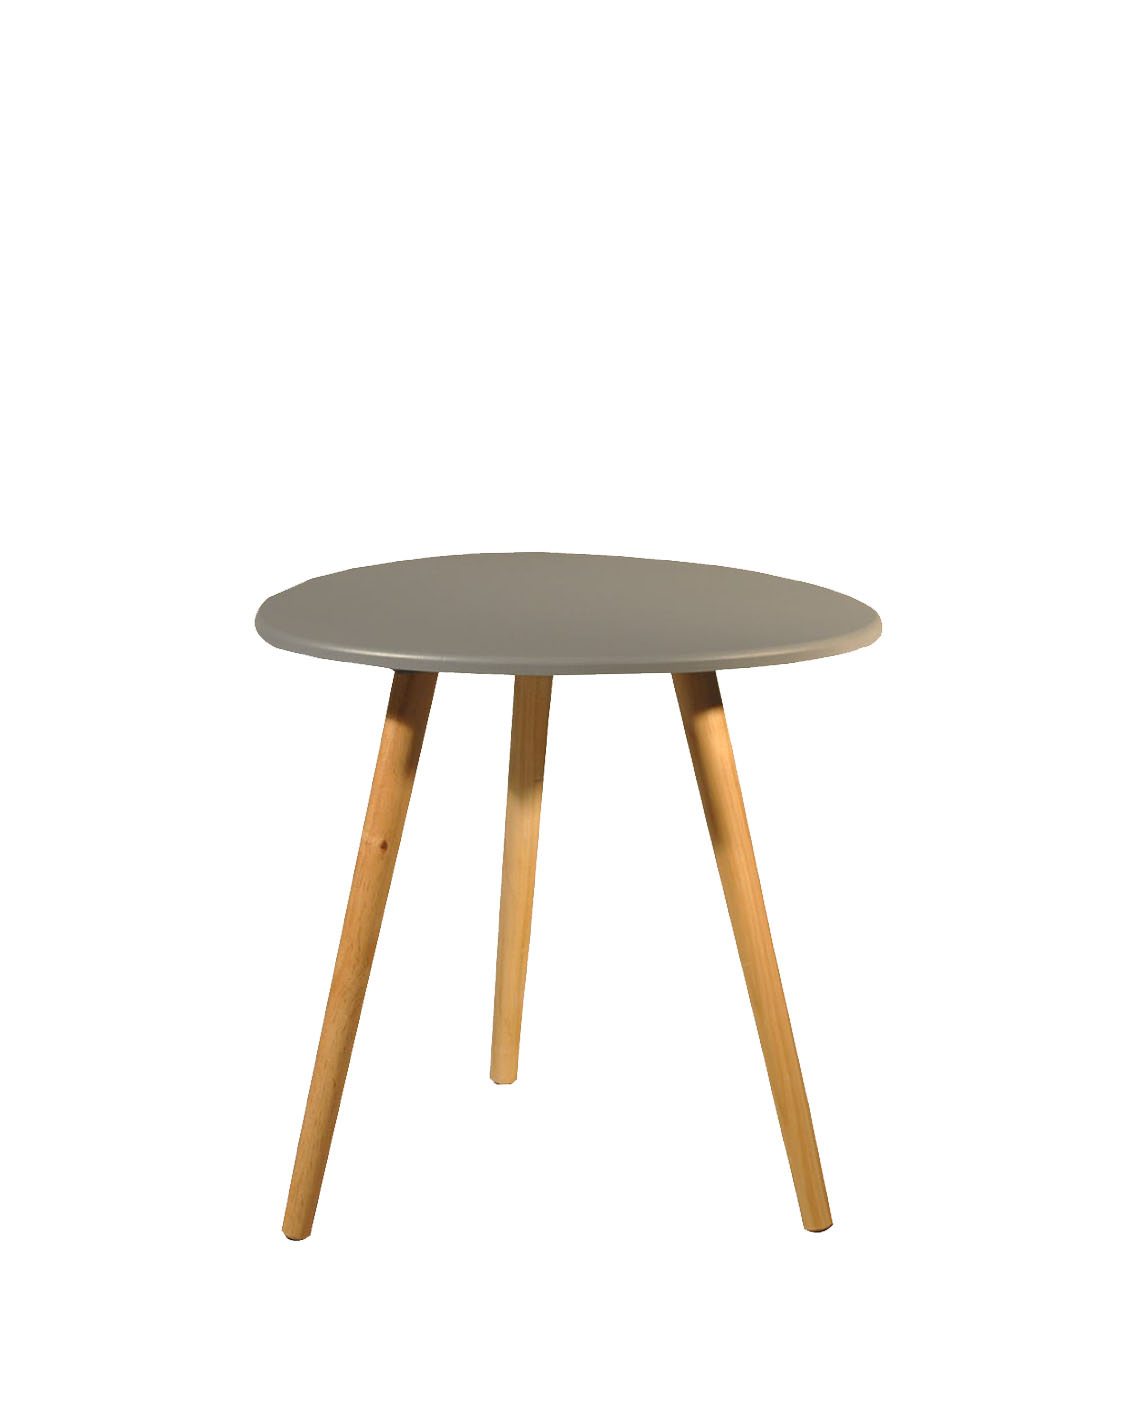 Table scandinave galet gris souris demeure et jardin for Table scandinave